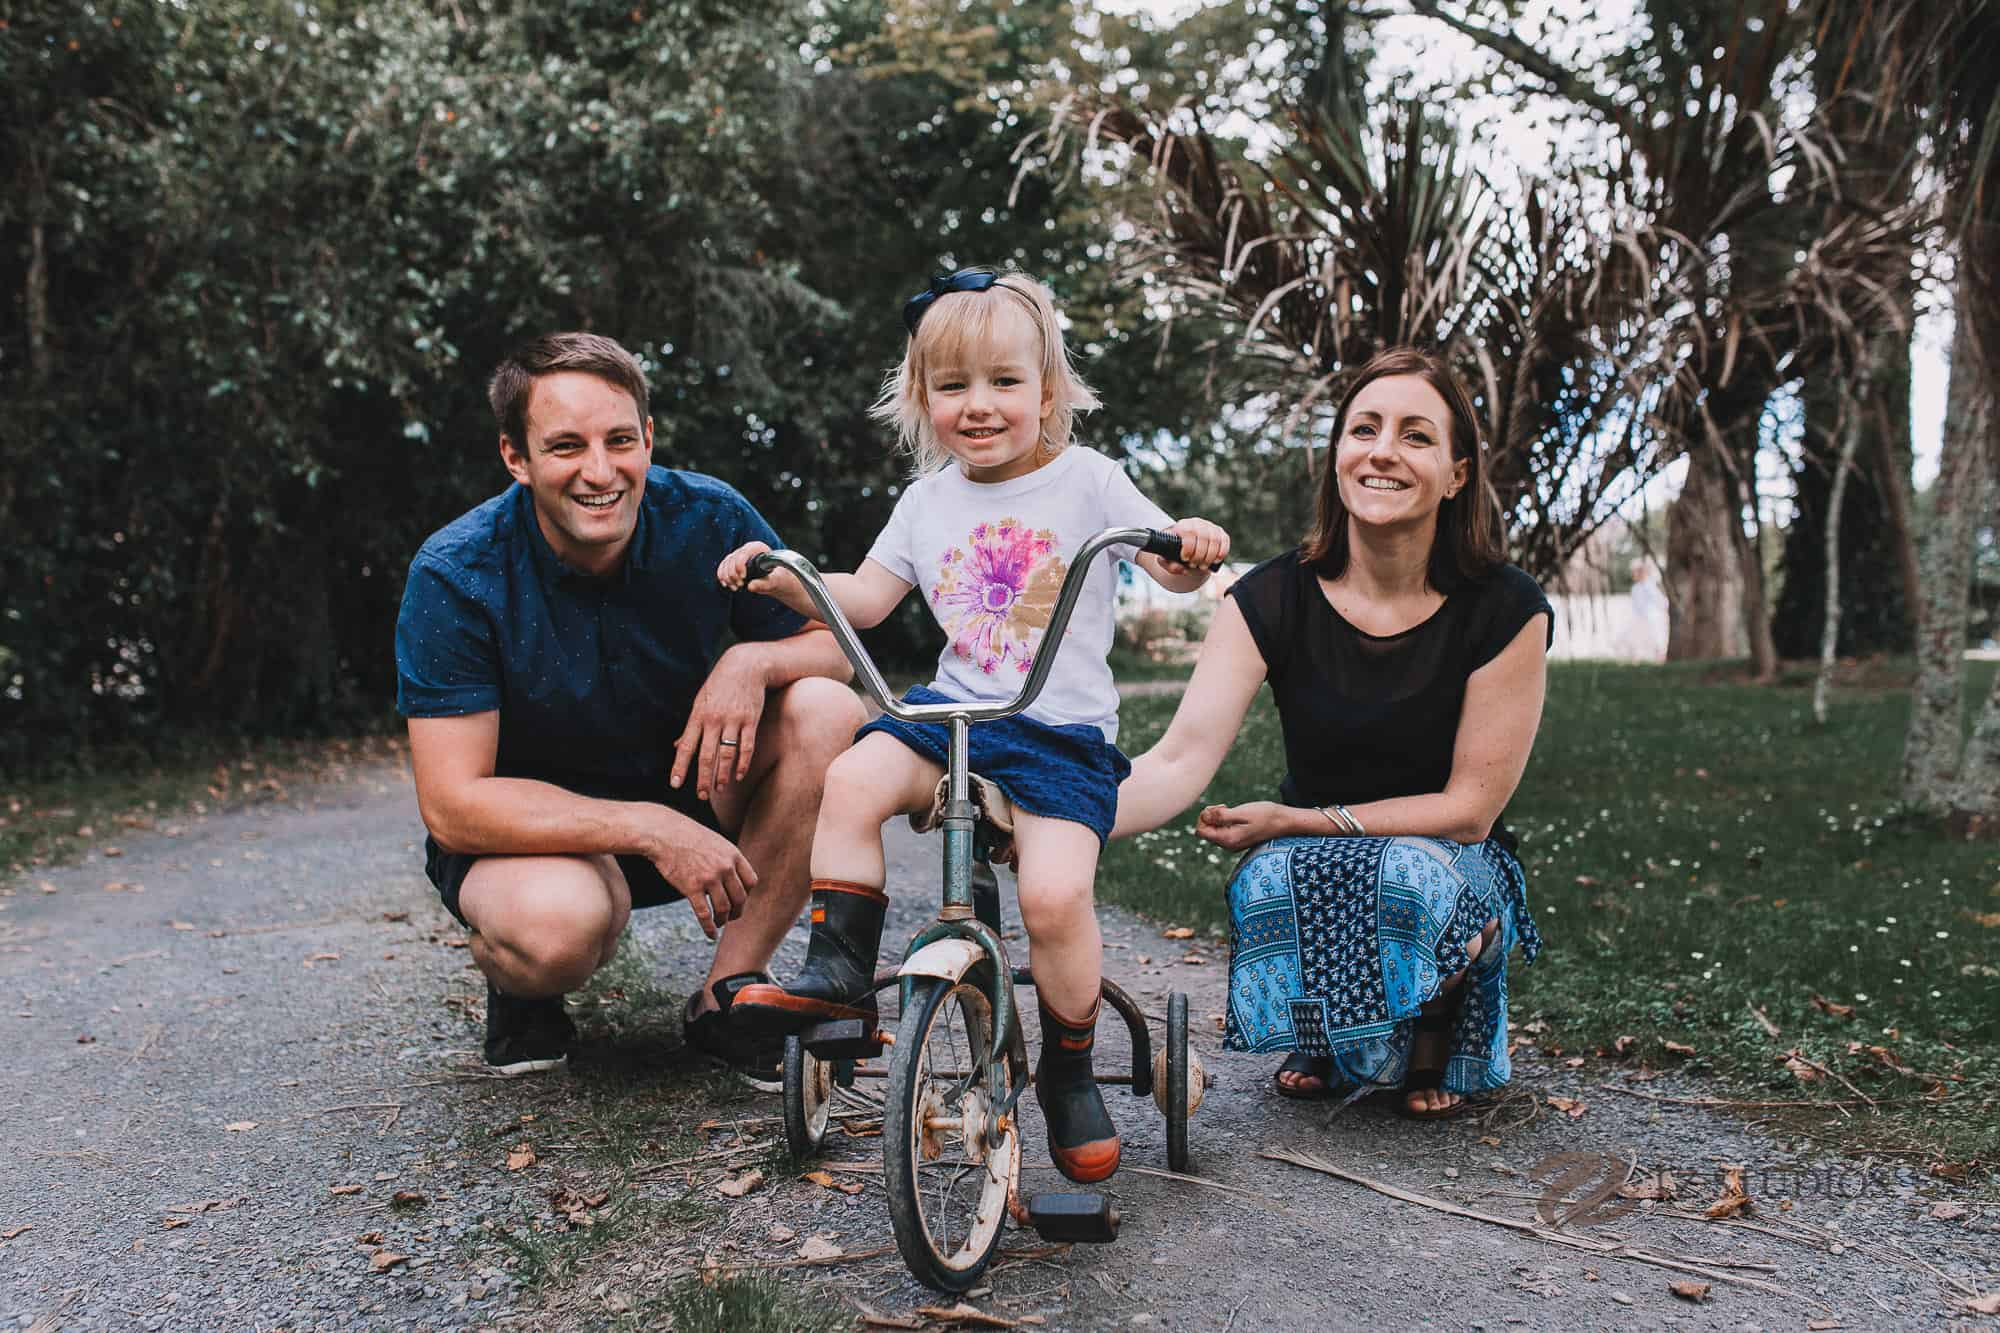 On her vintage push bike in this lifestyle Manawatu family portrait photoshoot